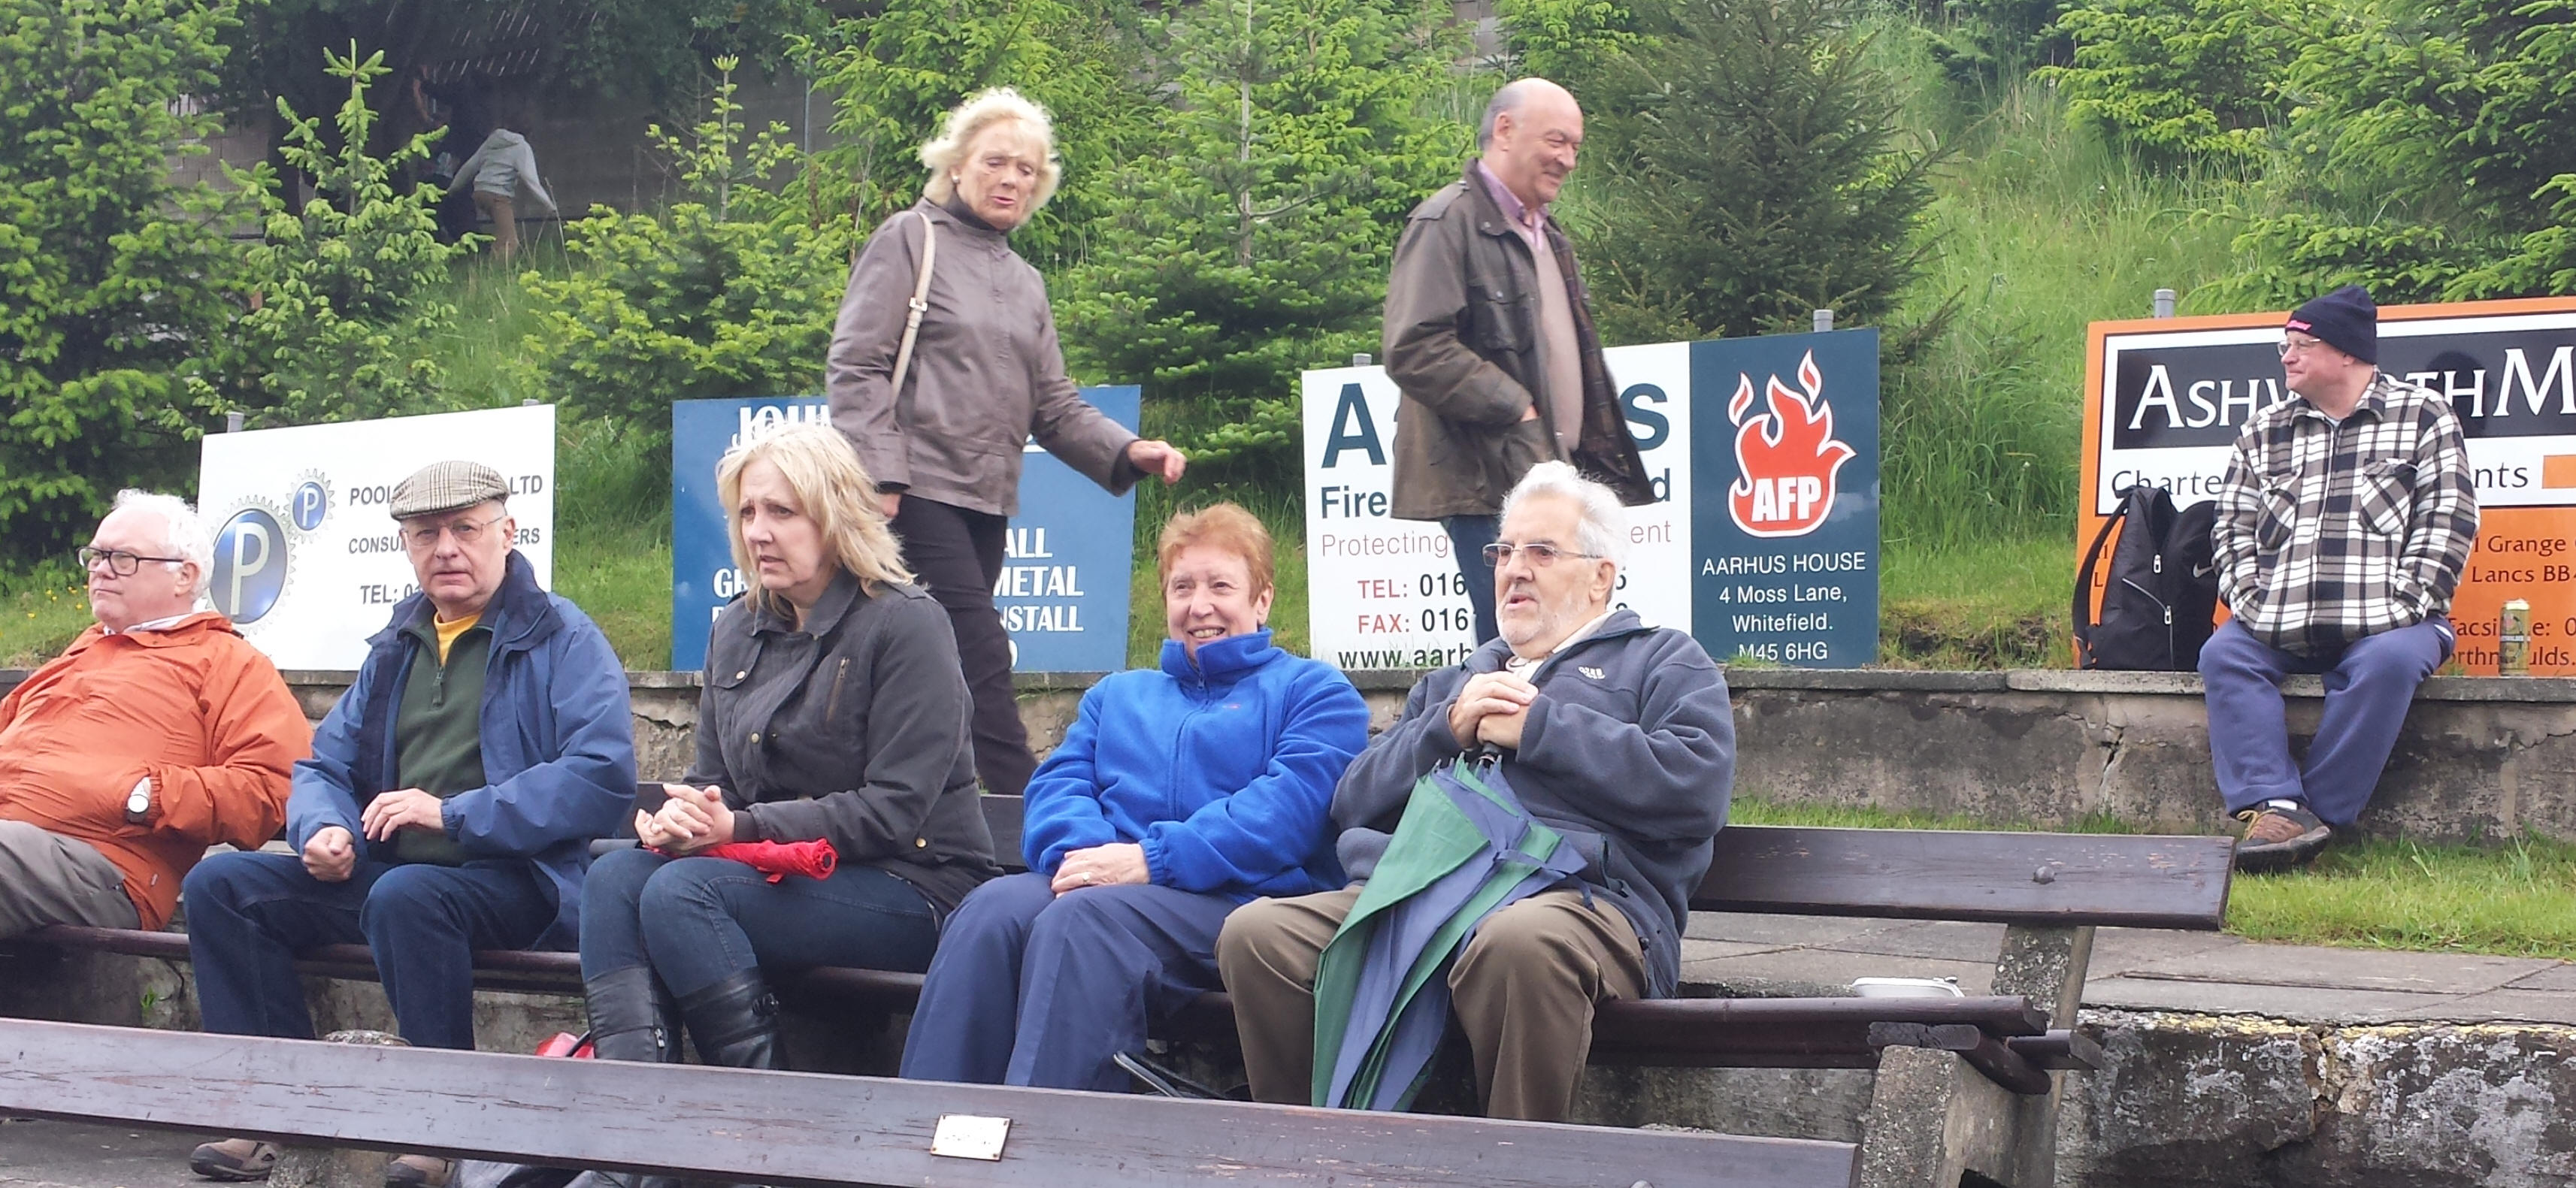 The Hardy few at Rawtenstall Cricket Club